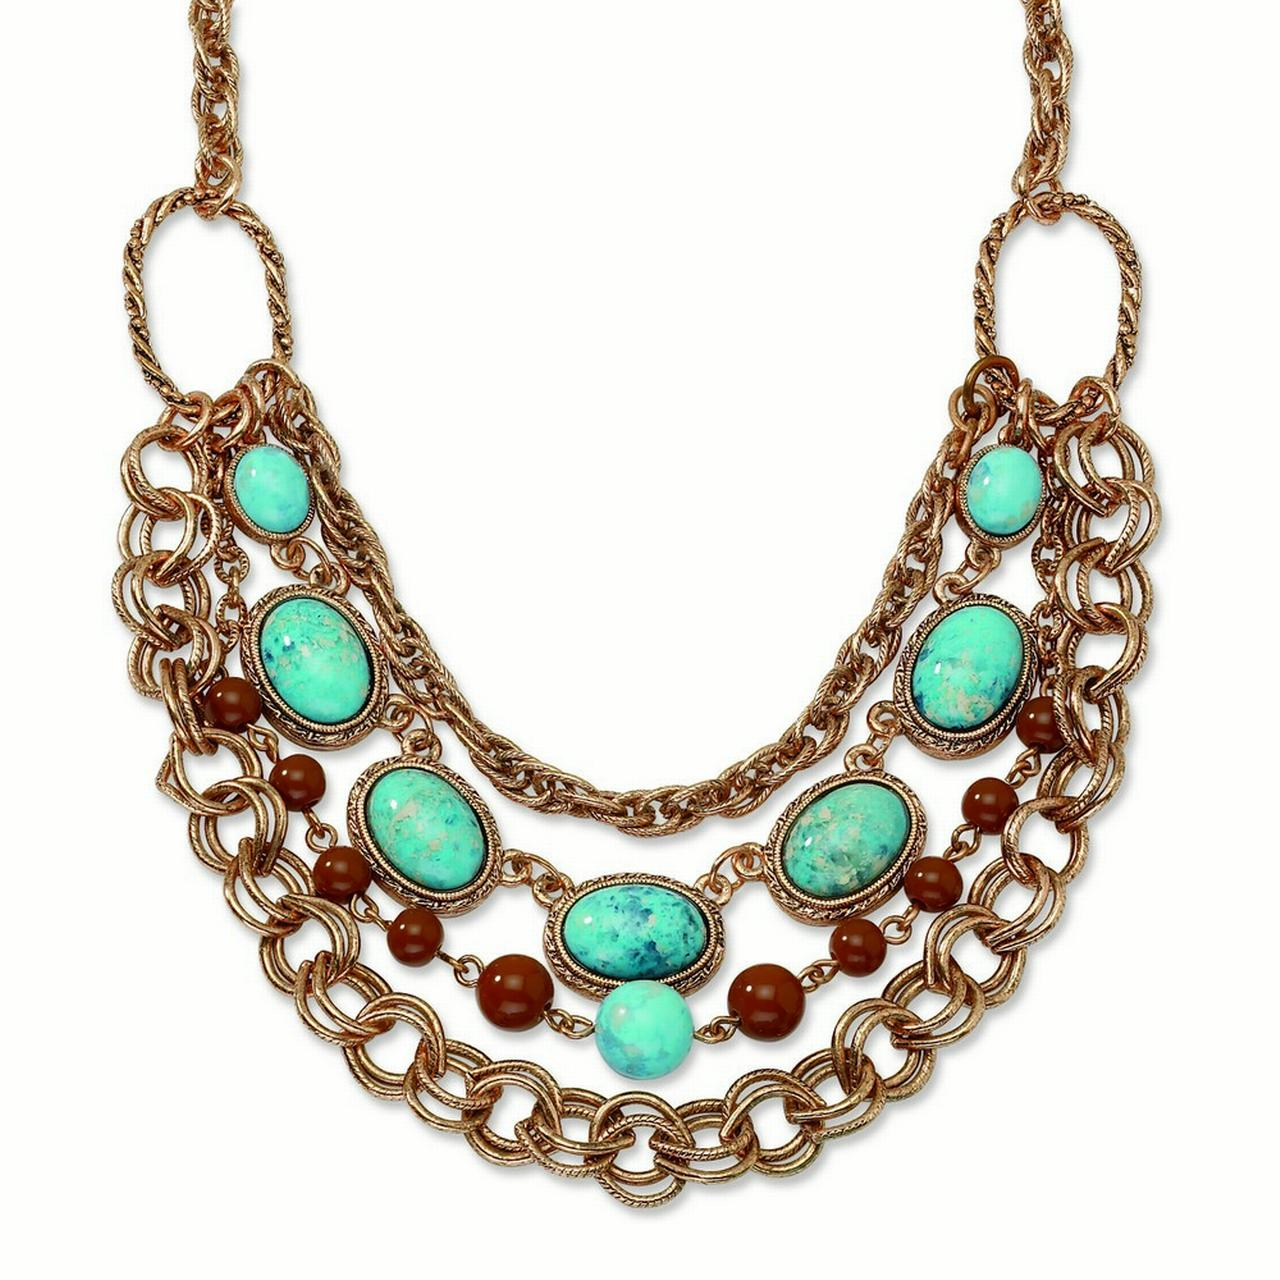 Copper-tone Aqua and Brown Beads Multistrand 16inch With Ext Necklace - 57.6 Grams